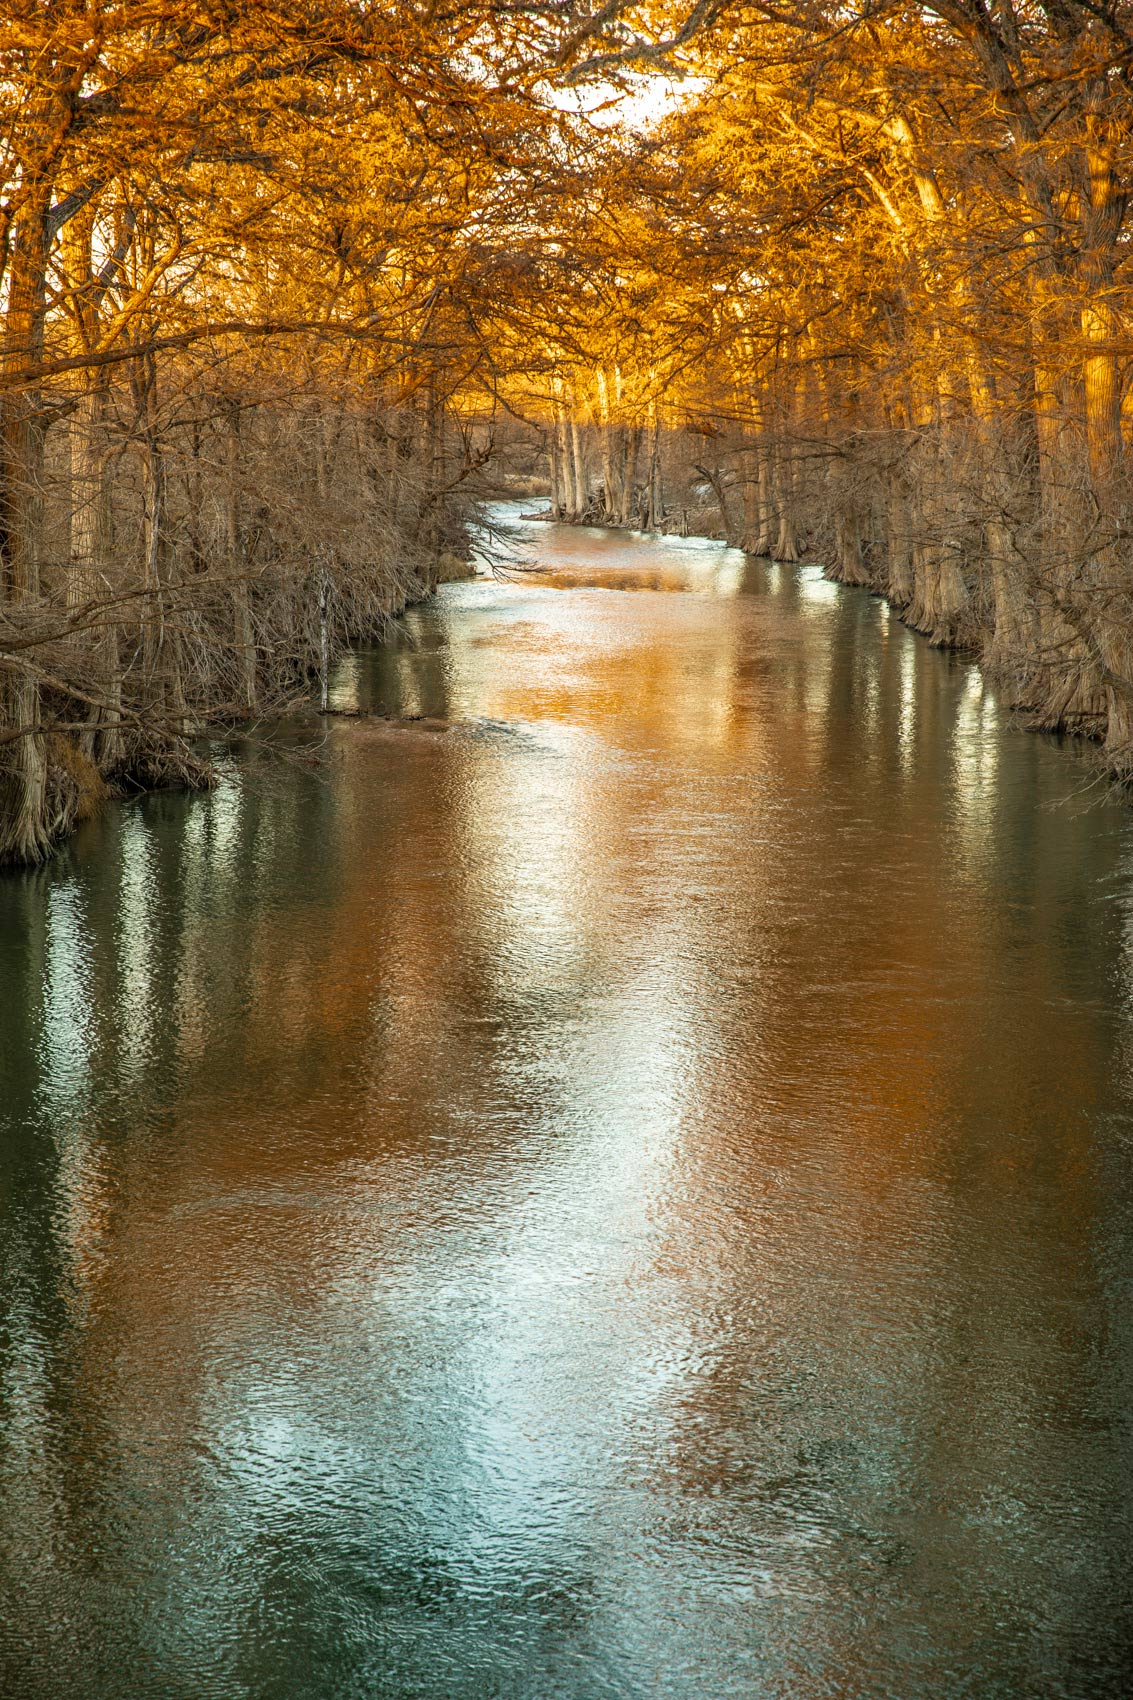 James Kiehl River Bend Park on the Guadalupe River